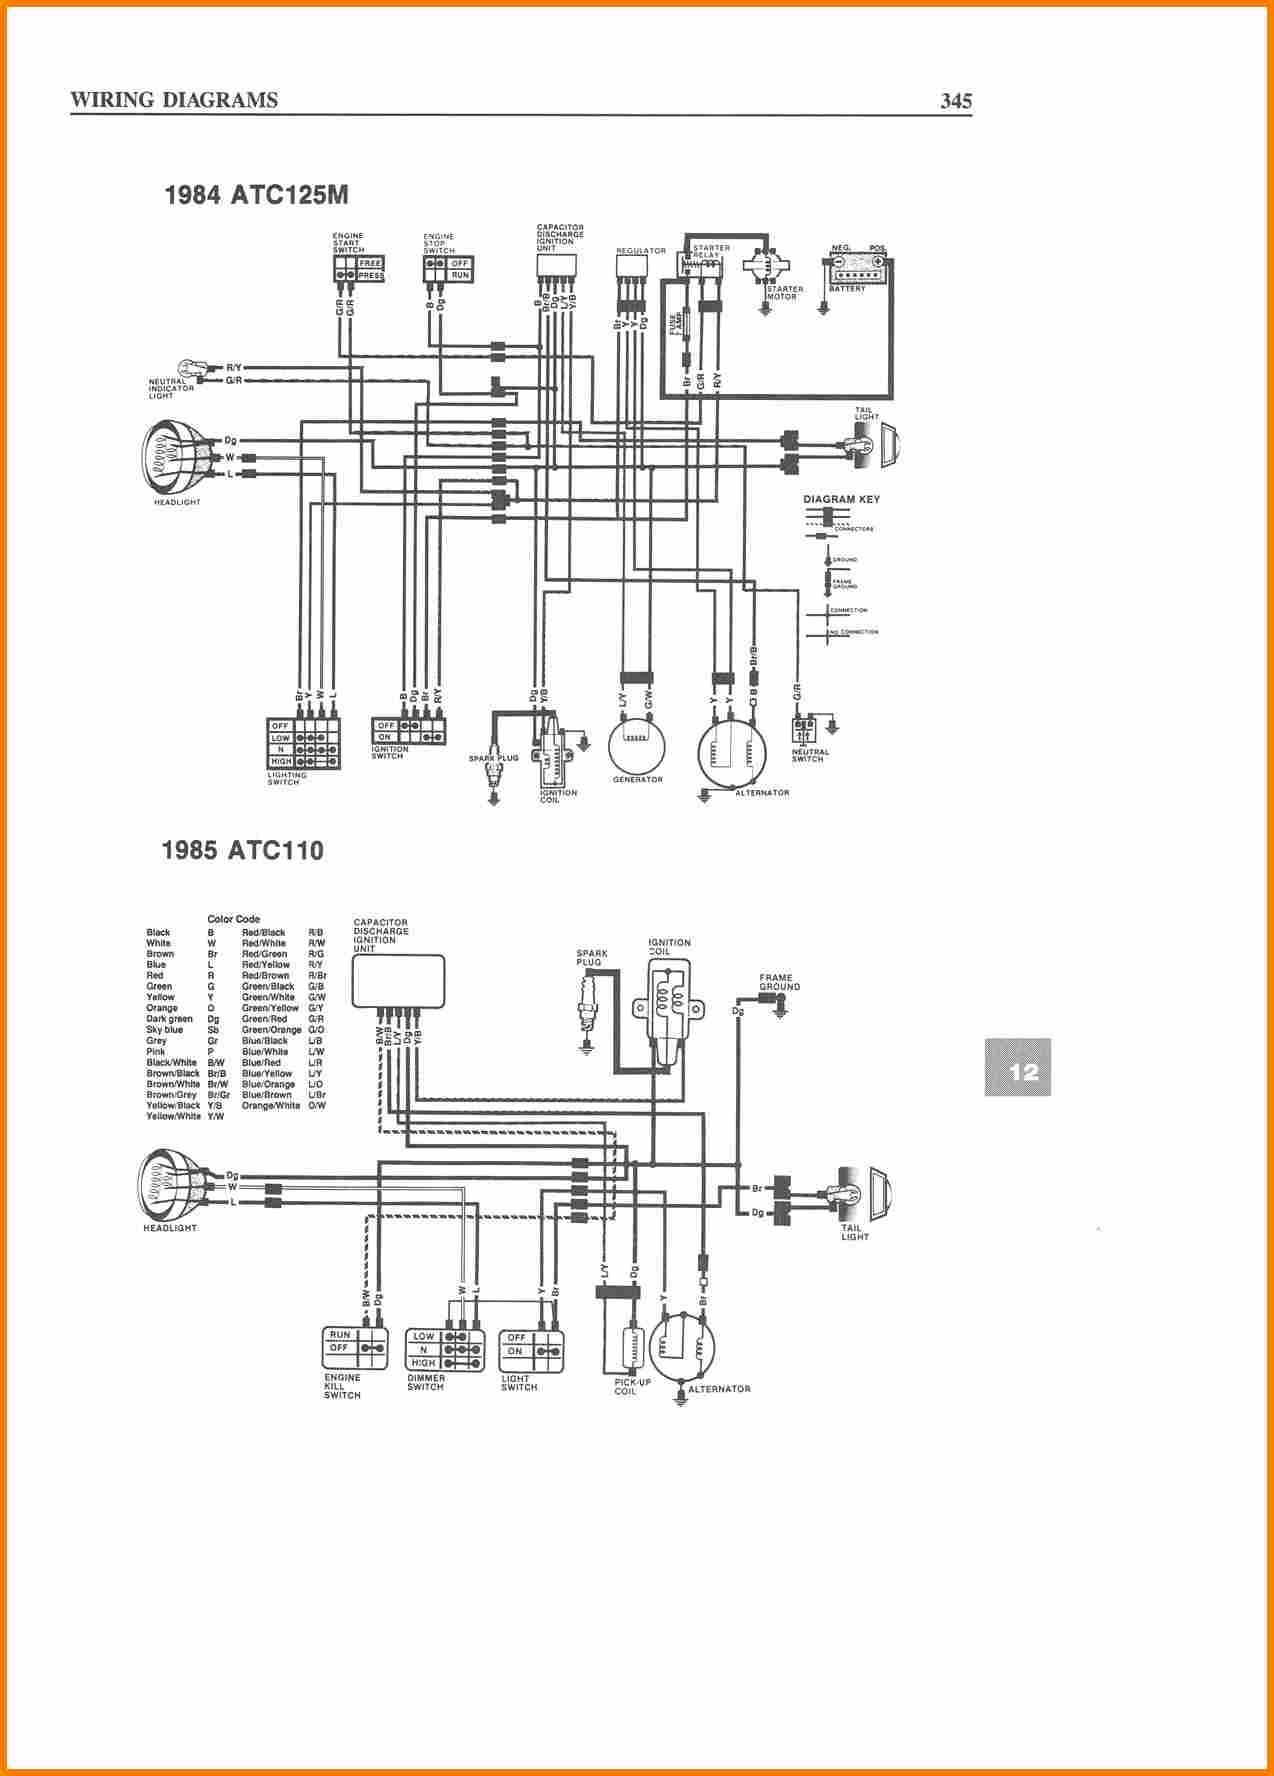 taotao wiring diagram taotao wiring diagram 110cc wiring diagrams rh parsplus co Baja 50Cc ATV Wiring Diagram Chinese 110Cc ATV Wiring Diagram